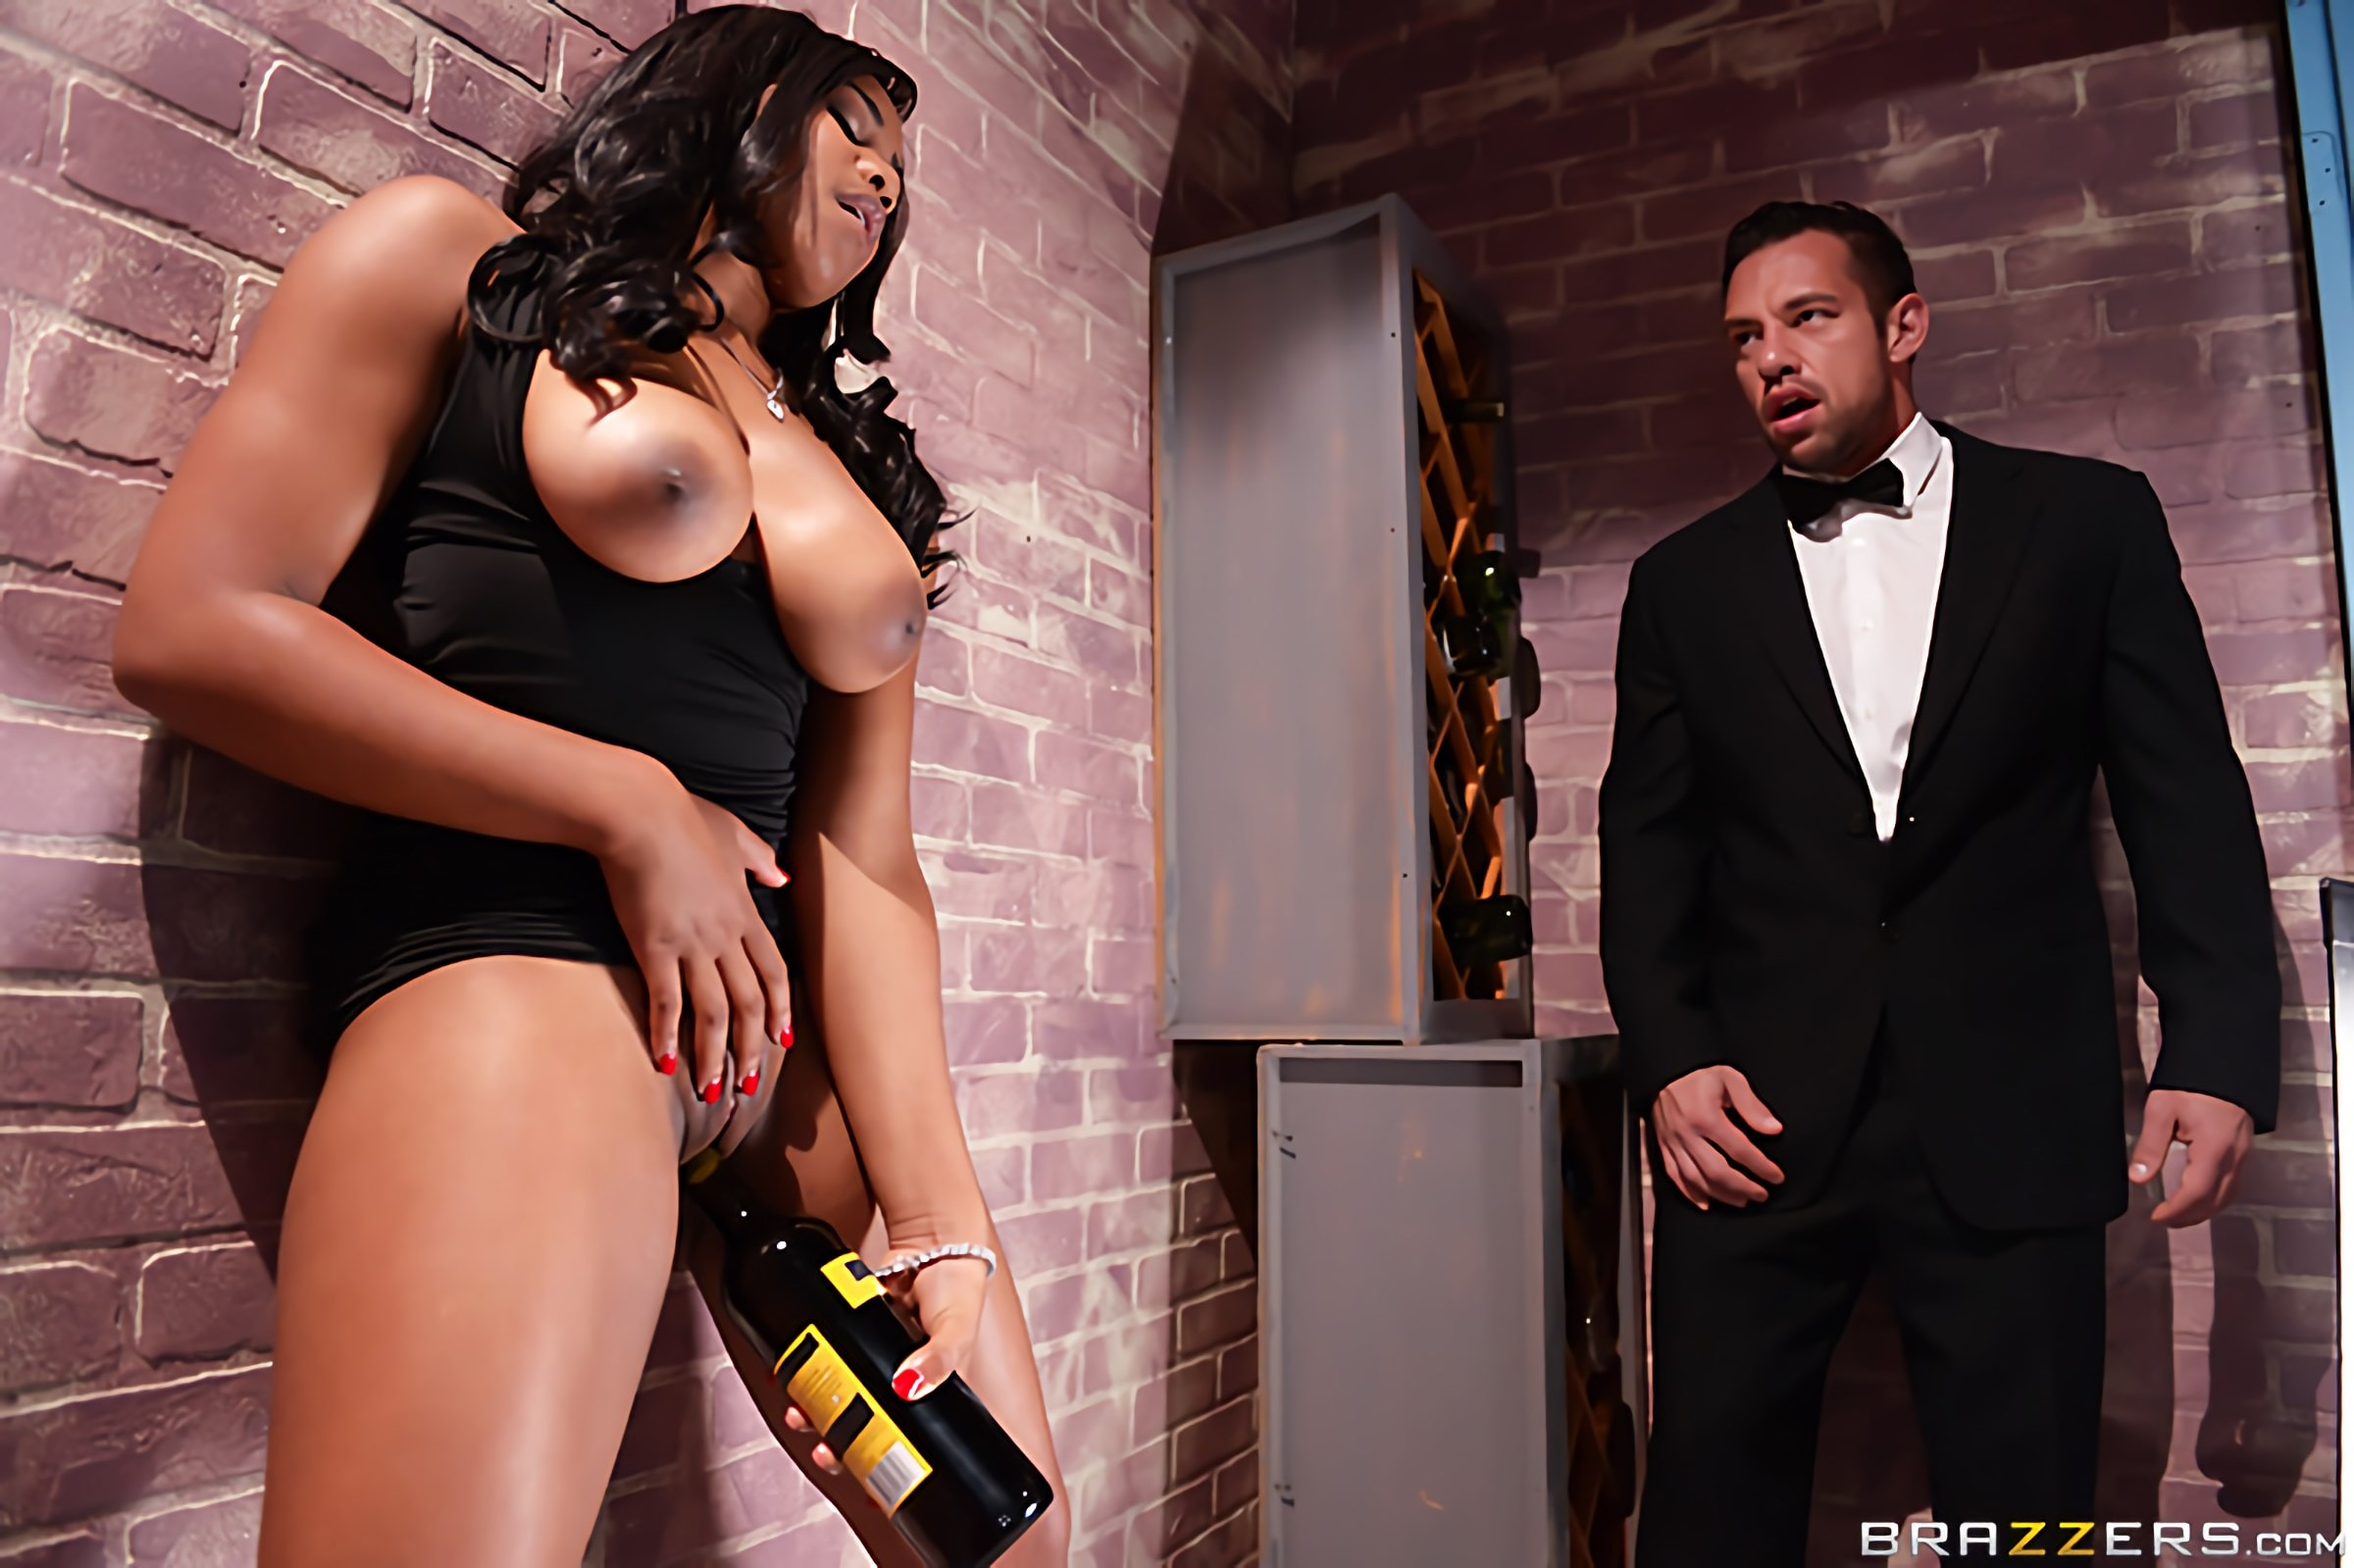 Brazzers 'A Tip For The Waitress' starring Jenna J Foxx (Photo 5)